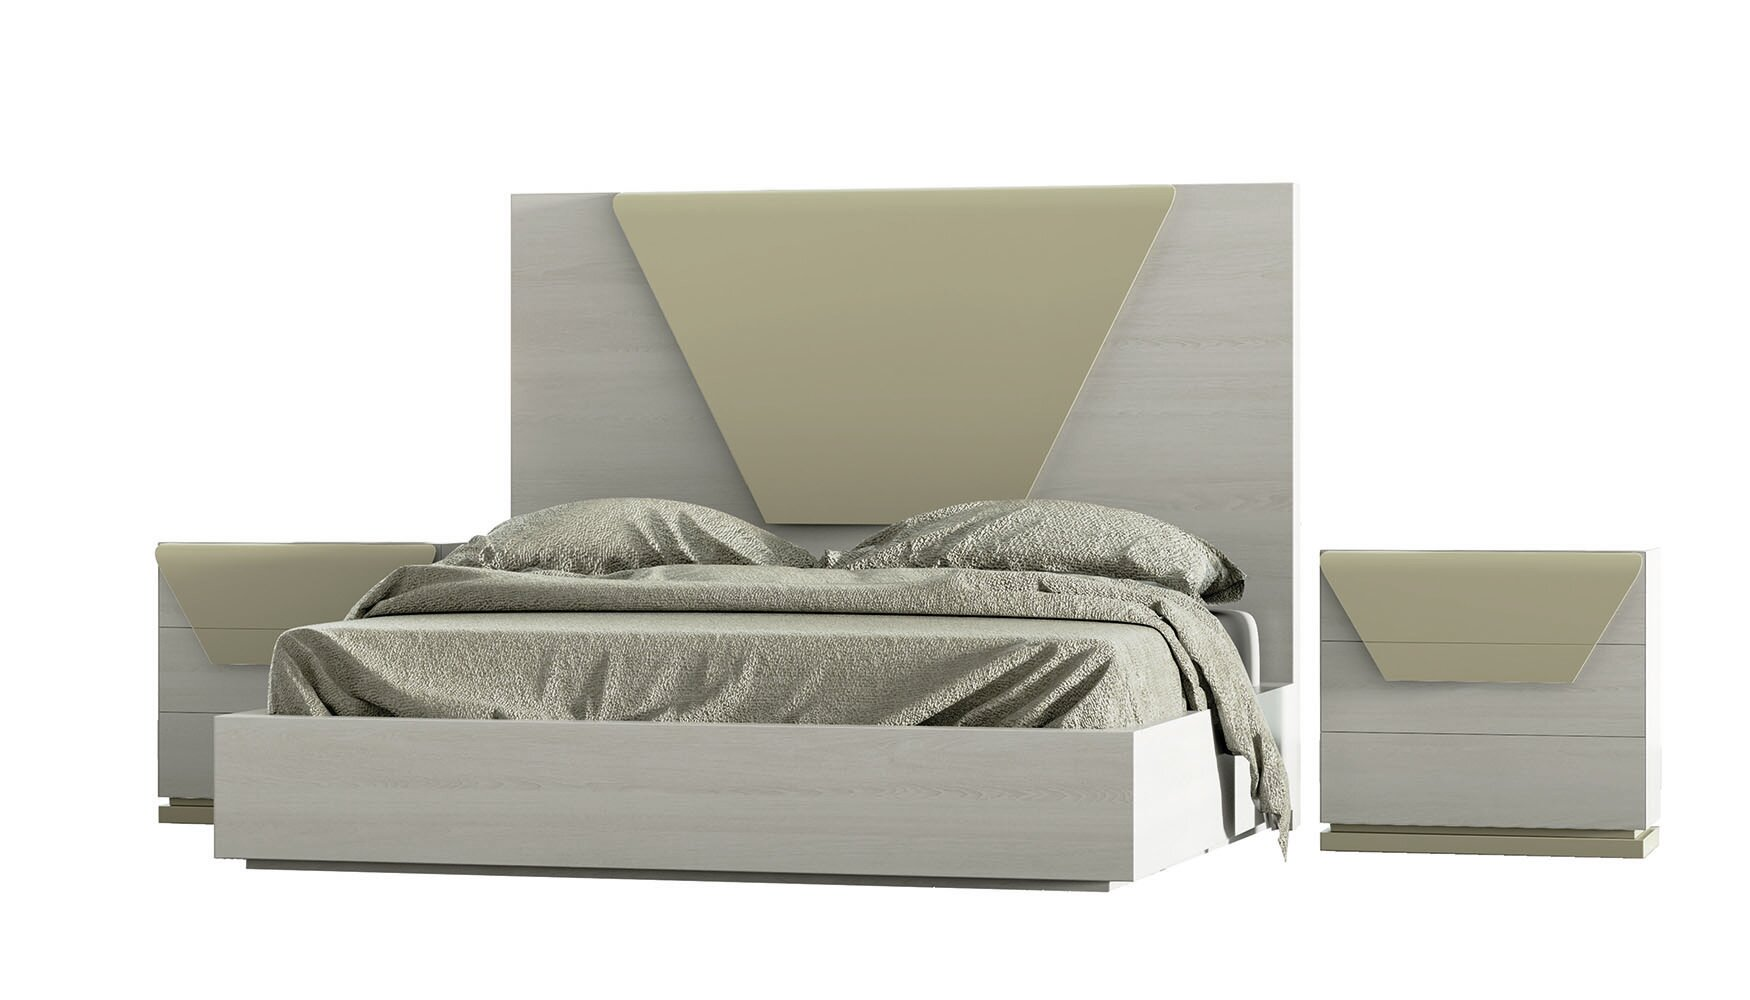 Hispania Home London Bedor87 Bedroom Set 3 Pieces Wayfair